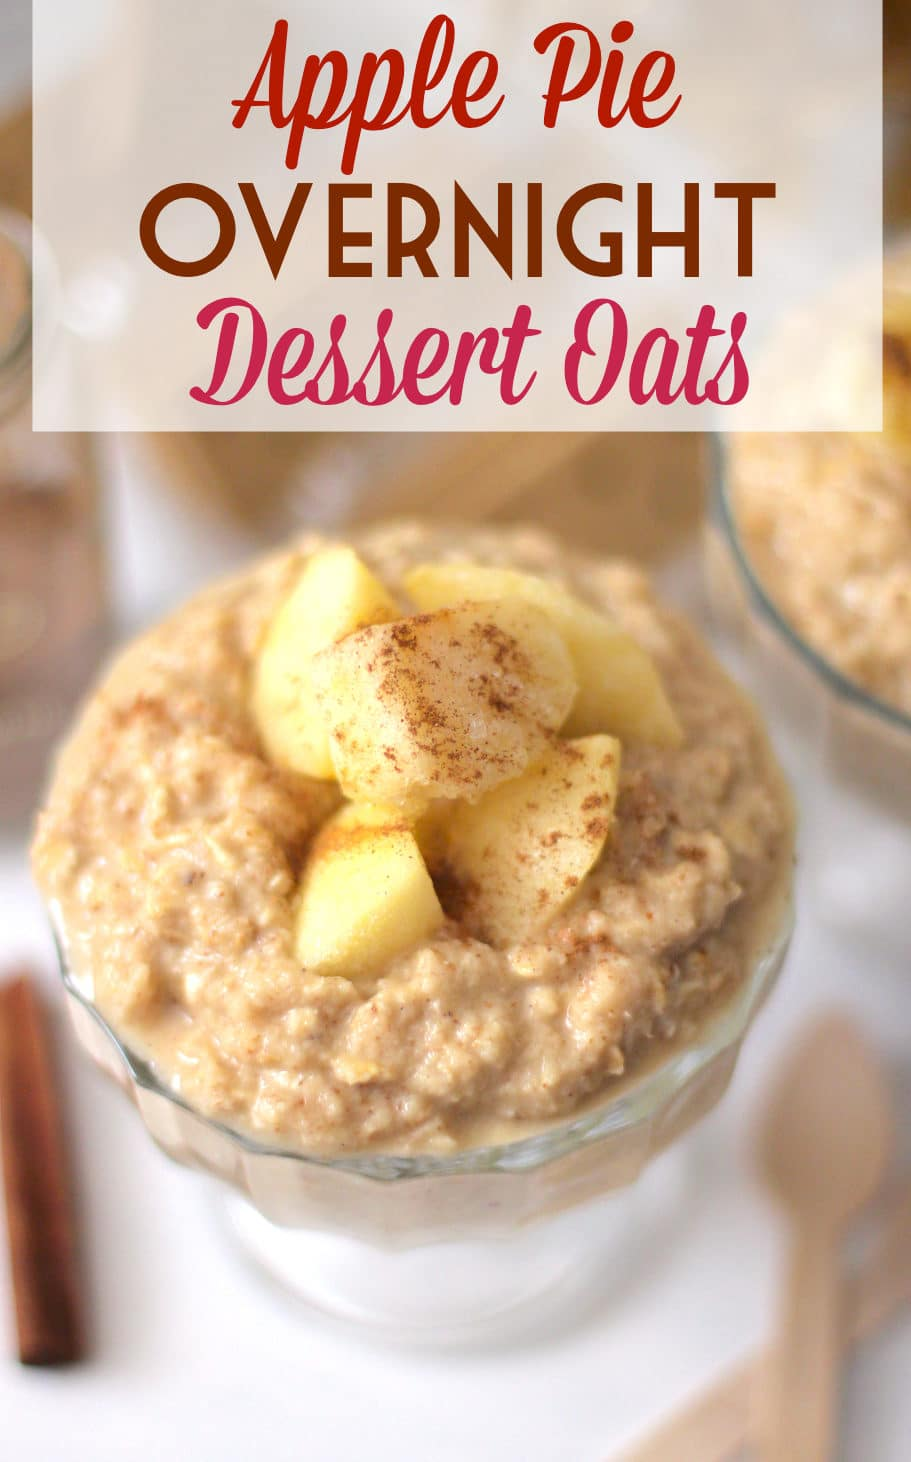 These Healthy Apple Pie Overnight Dessert Oats are sweet, yet sugar free, gluten free, and vegan, and they're the PERFECT thing for the morning sweet tooth! -- Healthy Dessert Recipes at the Desserts With Benefits Blog